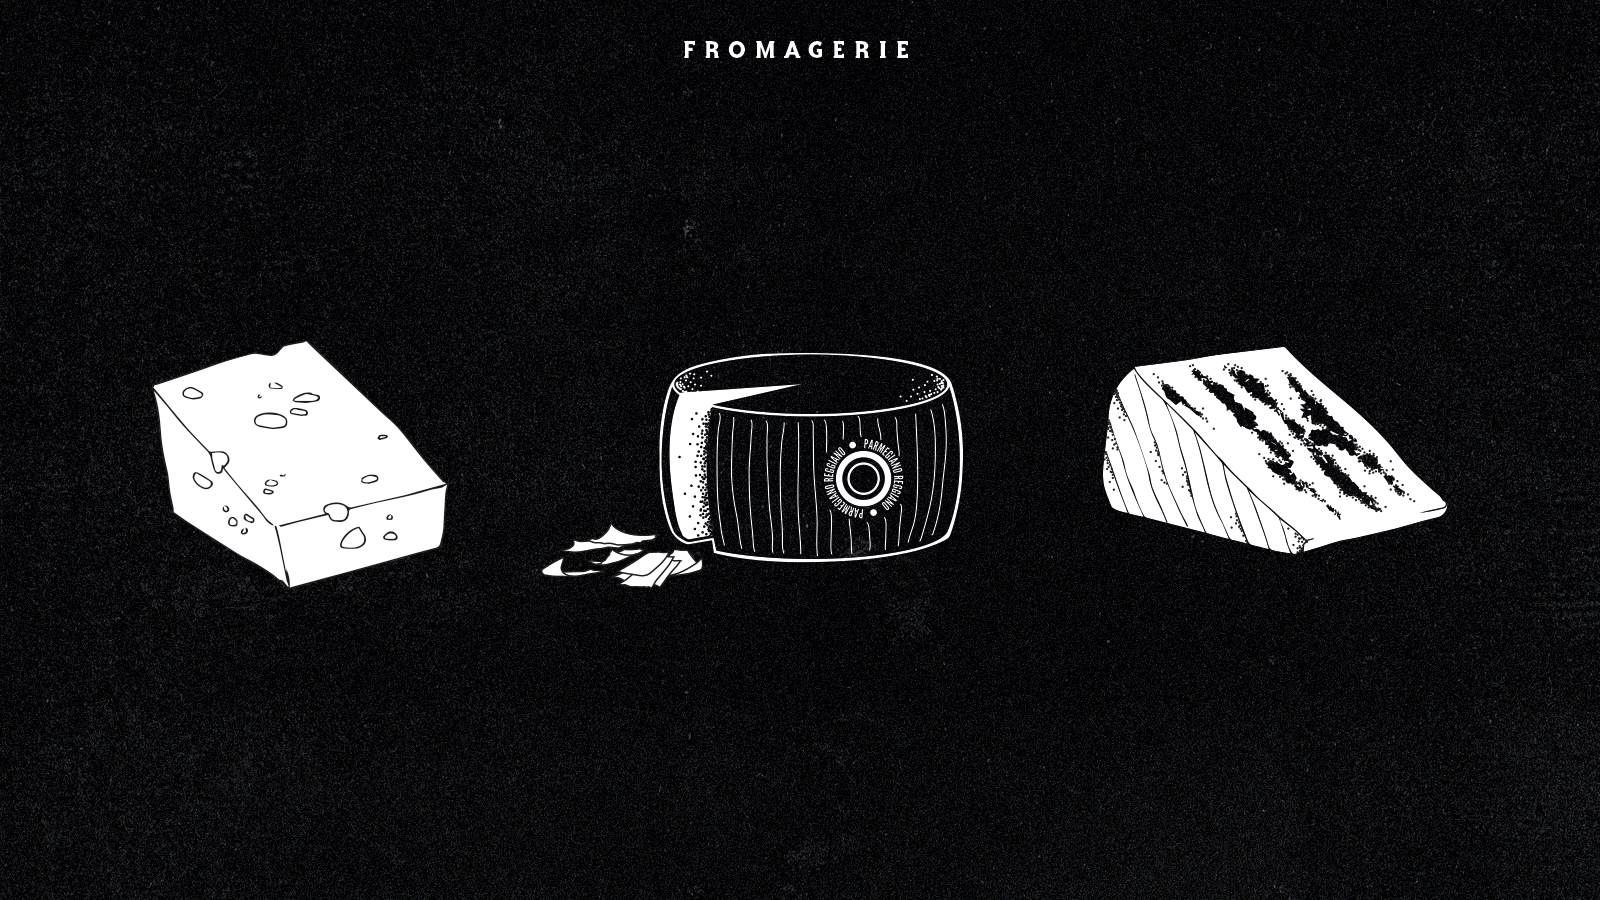 13_FROMAGERIE_2